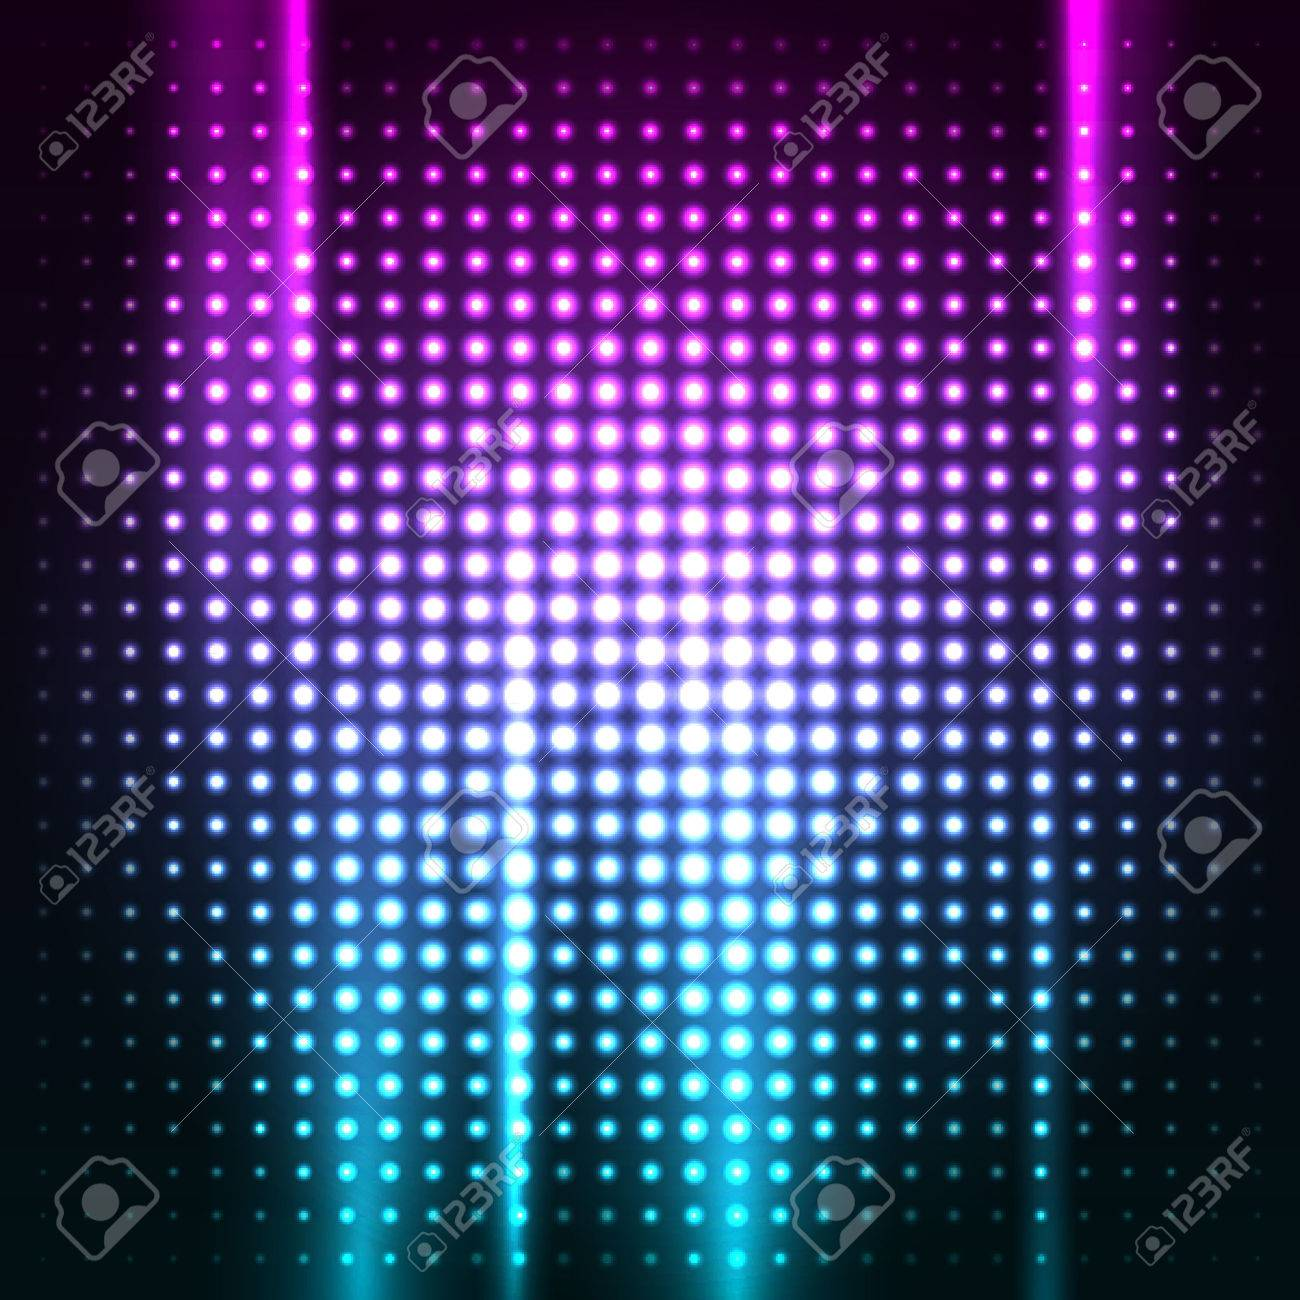 Abstract Colorful Disco Club Background Vector Illustration For